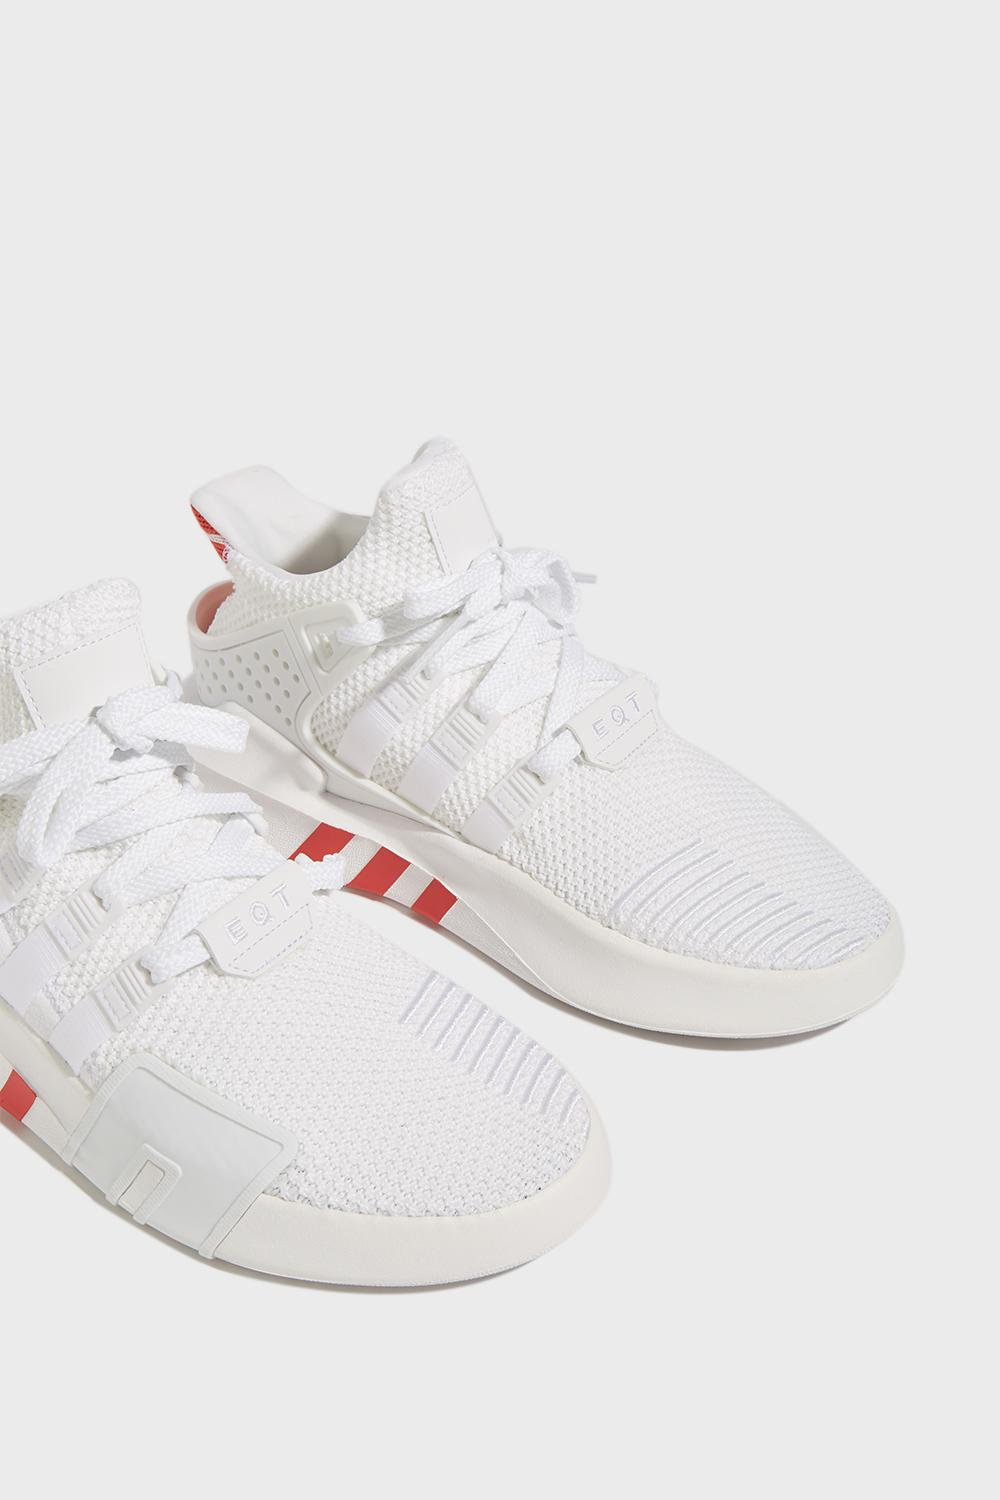 size 40 03138 f2994 Adidas Originals - White Eqt Basketball Adv Trainers for Men - Lyst. View  fullscreen